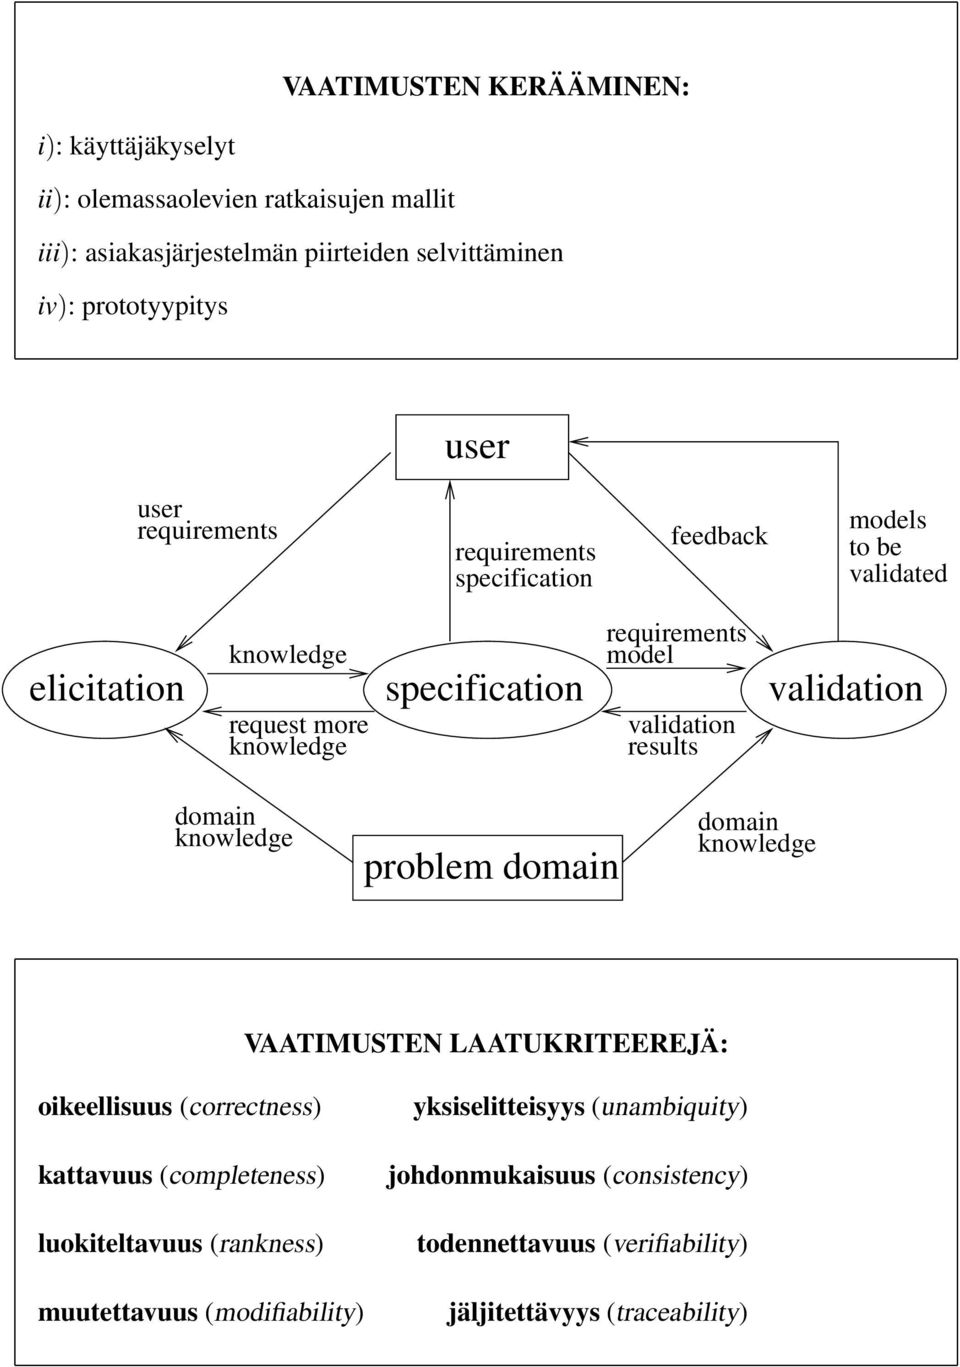 validation results validation domain kwledge problem domain domain kwledge VAATIMUSTN LAATUKRITRJÄ: oikeellisuus (correctness) kattavuus (completeness)